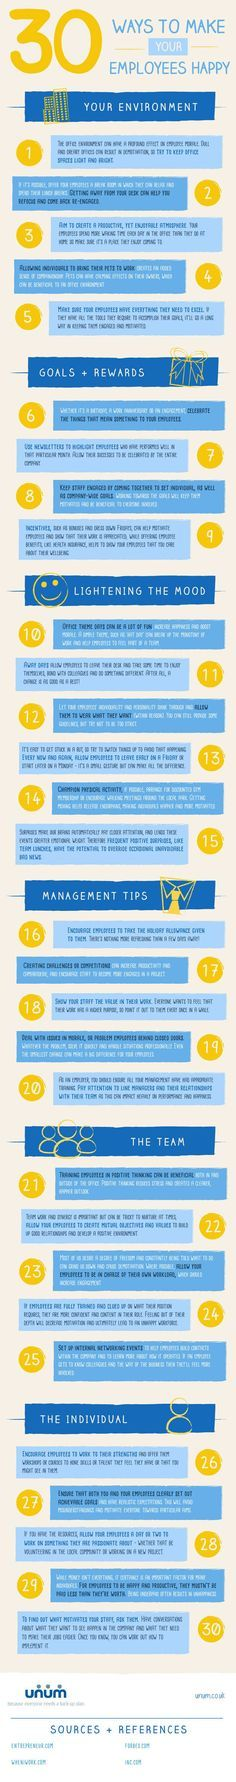 It should go without saying that happy employees are good for your business. They are more likely to help your business achieve more success. Unum has put together an infographic to show you 30 ways to keep your employees happy: